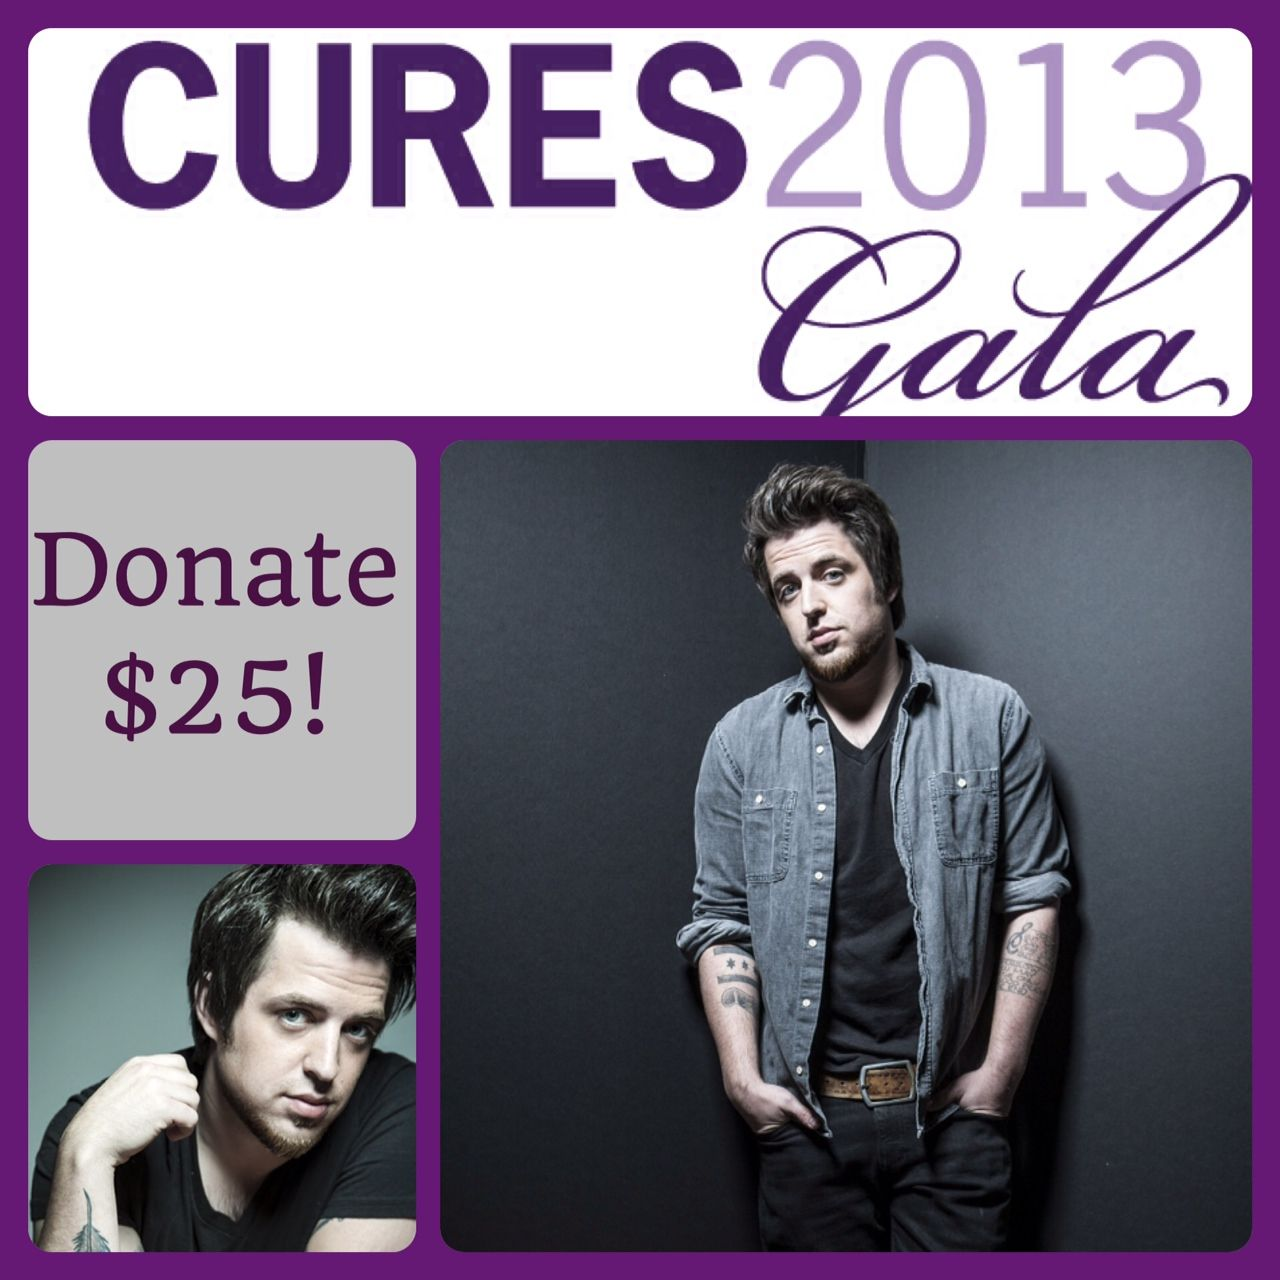 Donate $25 and you could win an autographed guitar by Lee DeWyze. Details here: www.demandcurestoday.org/lee